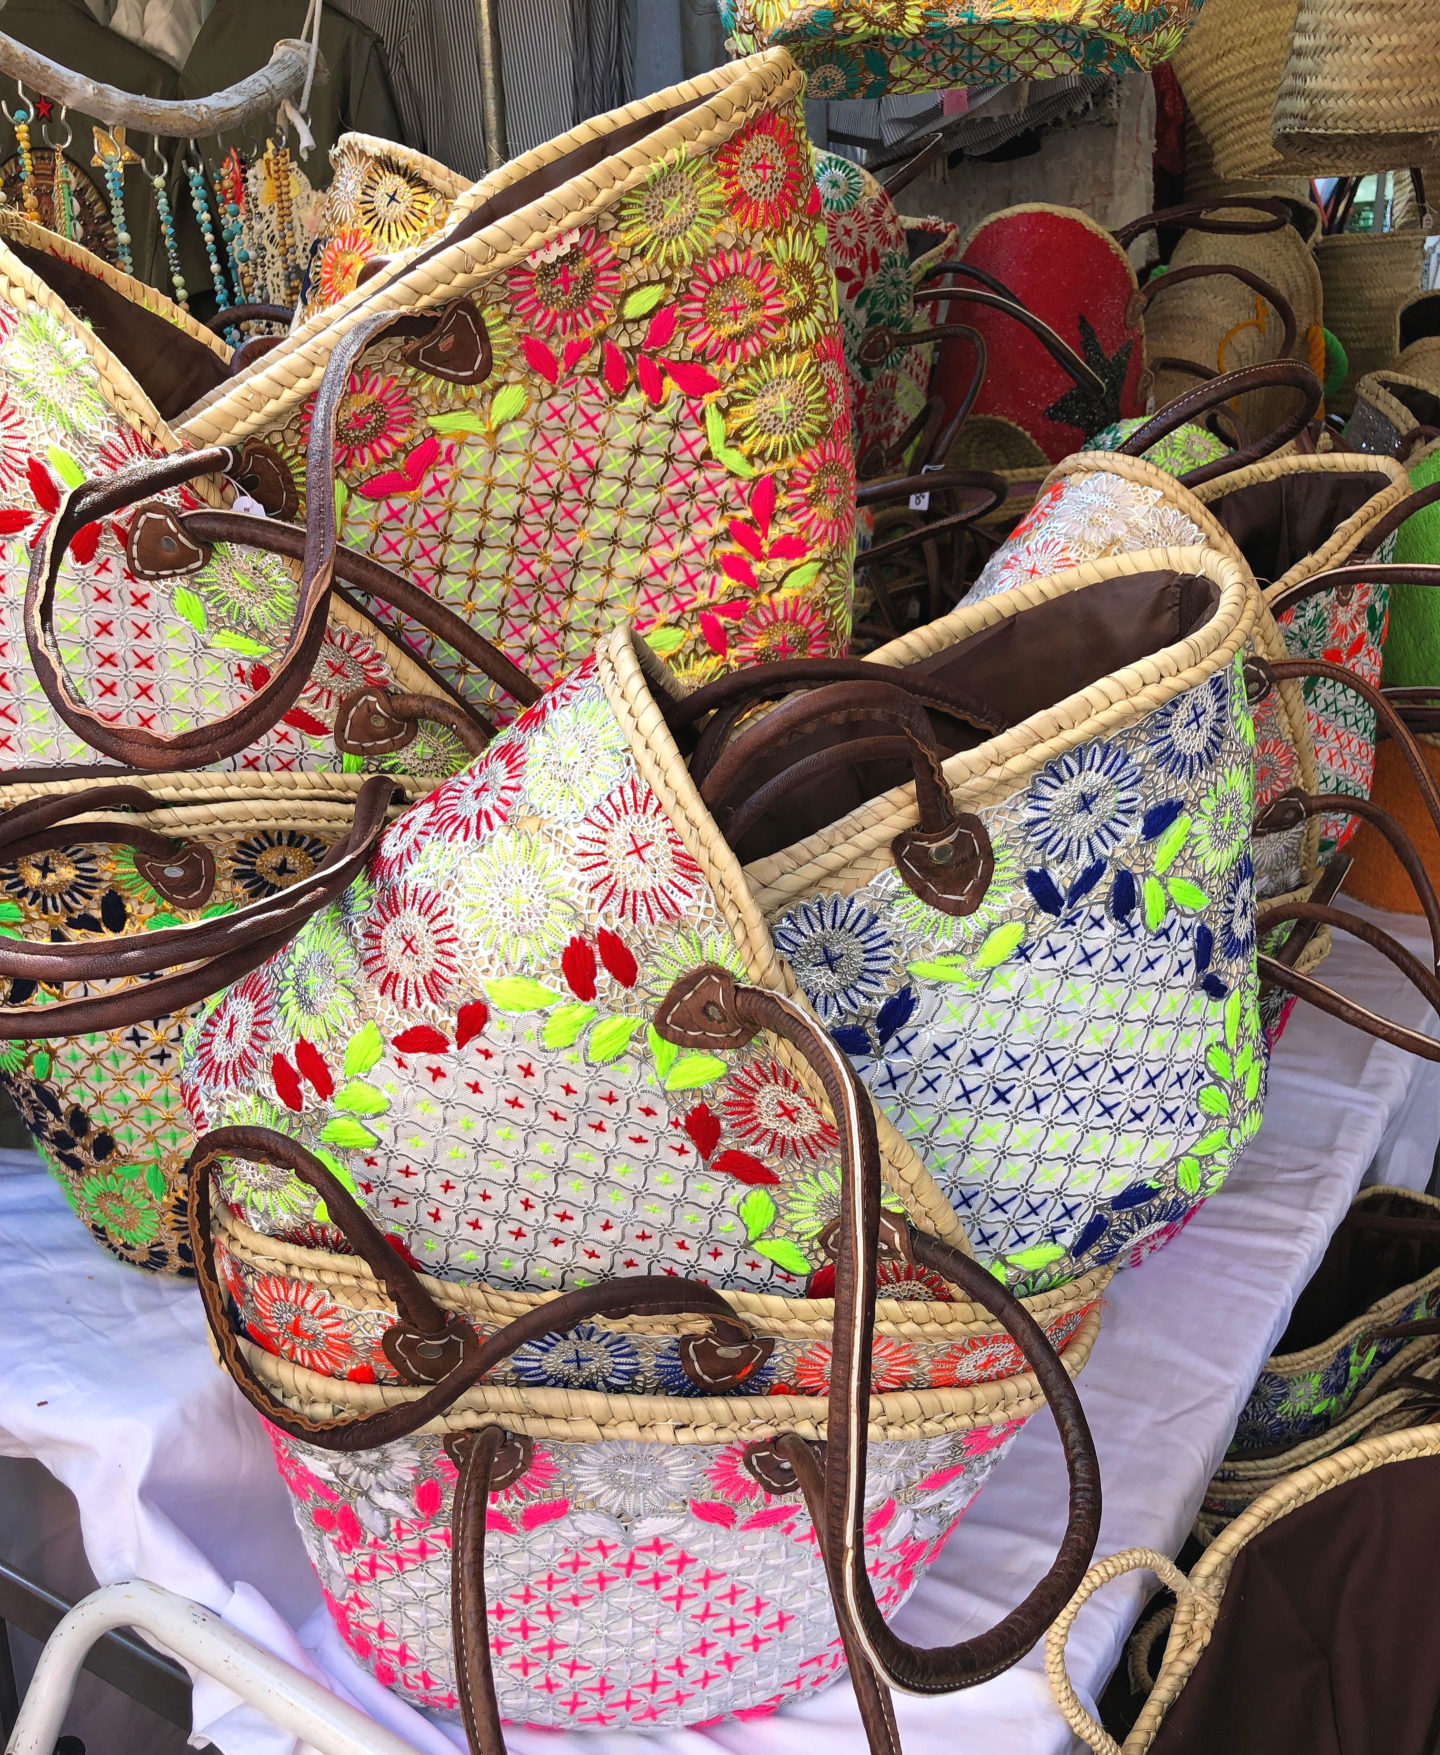 Embroidered wicker baskets